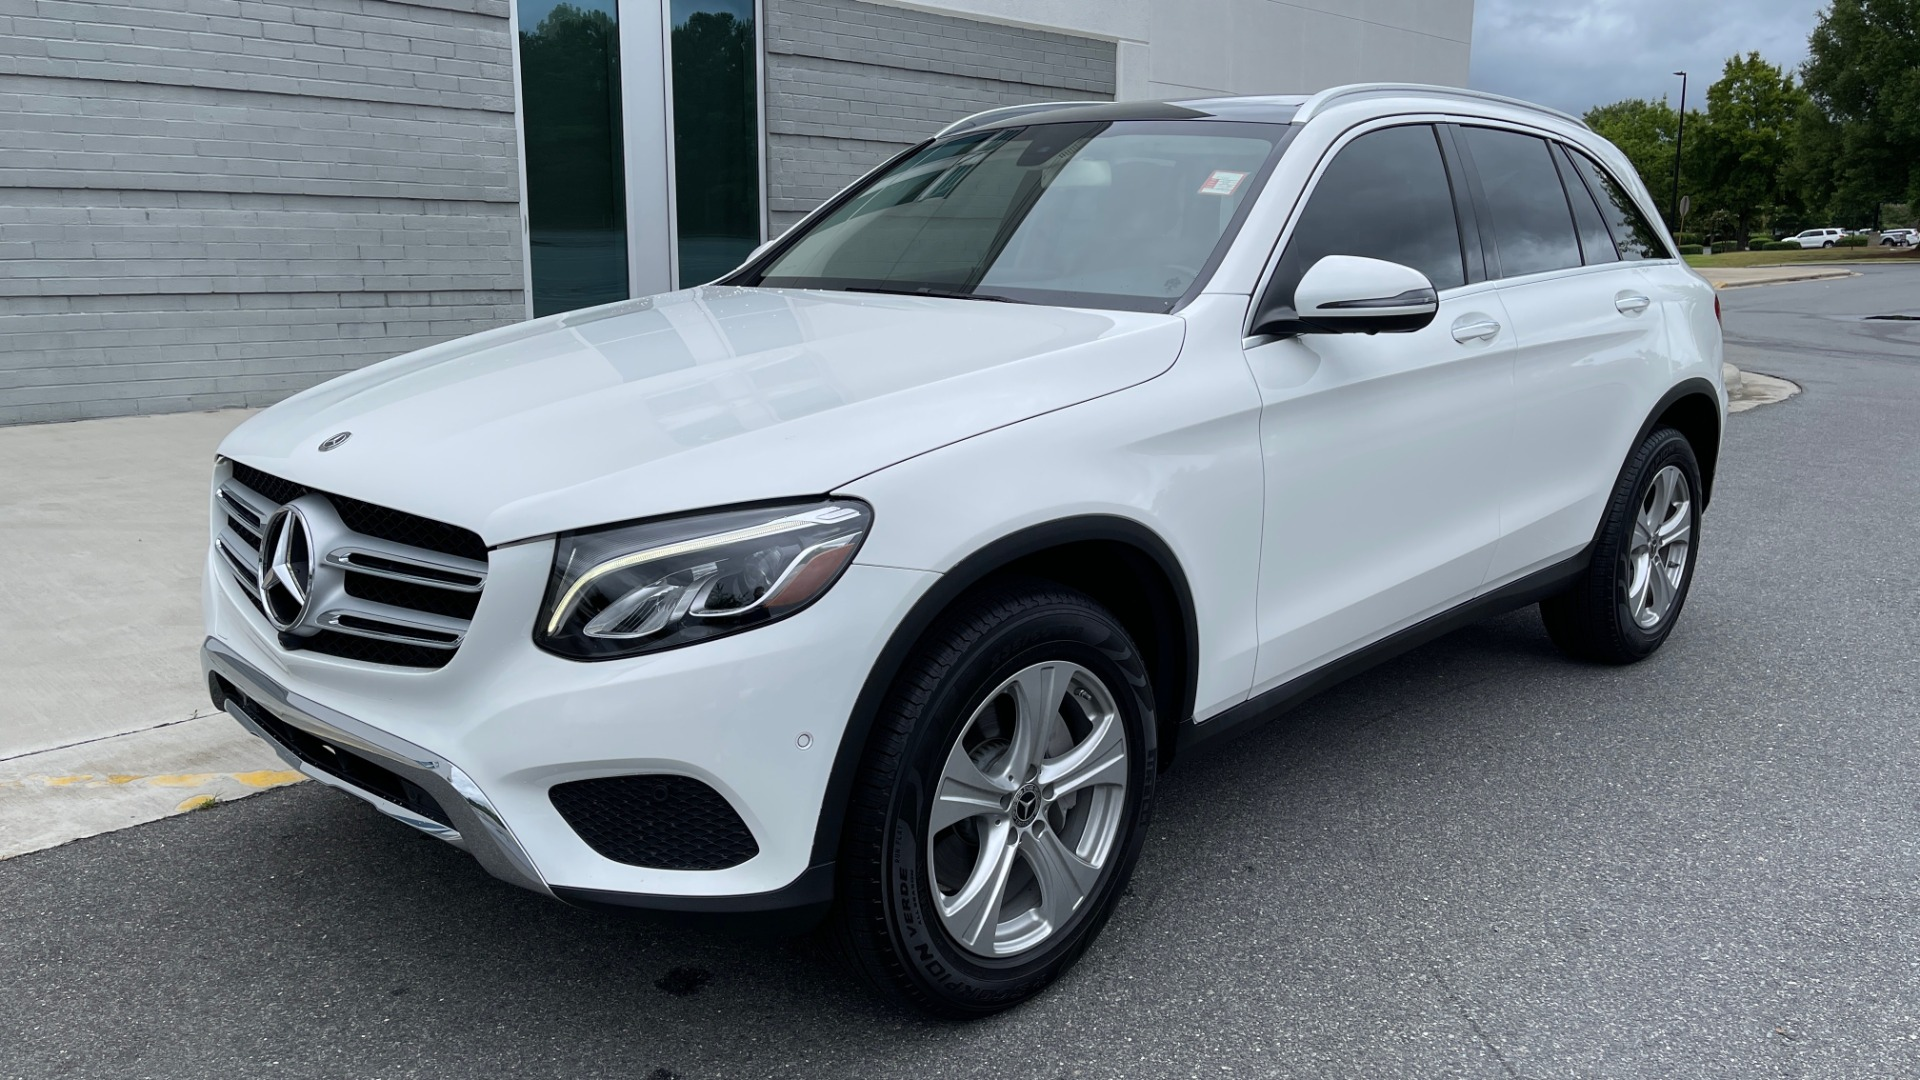 Used 2018 Mercedes-Benz GLC 300 PREMIUM / PANO-ROOF / HTD STS / PARK ASST / REARVIEW for sale $34,613 at Formula Imports in Charlotte NC 28227 3